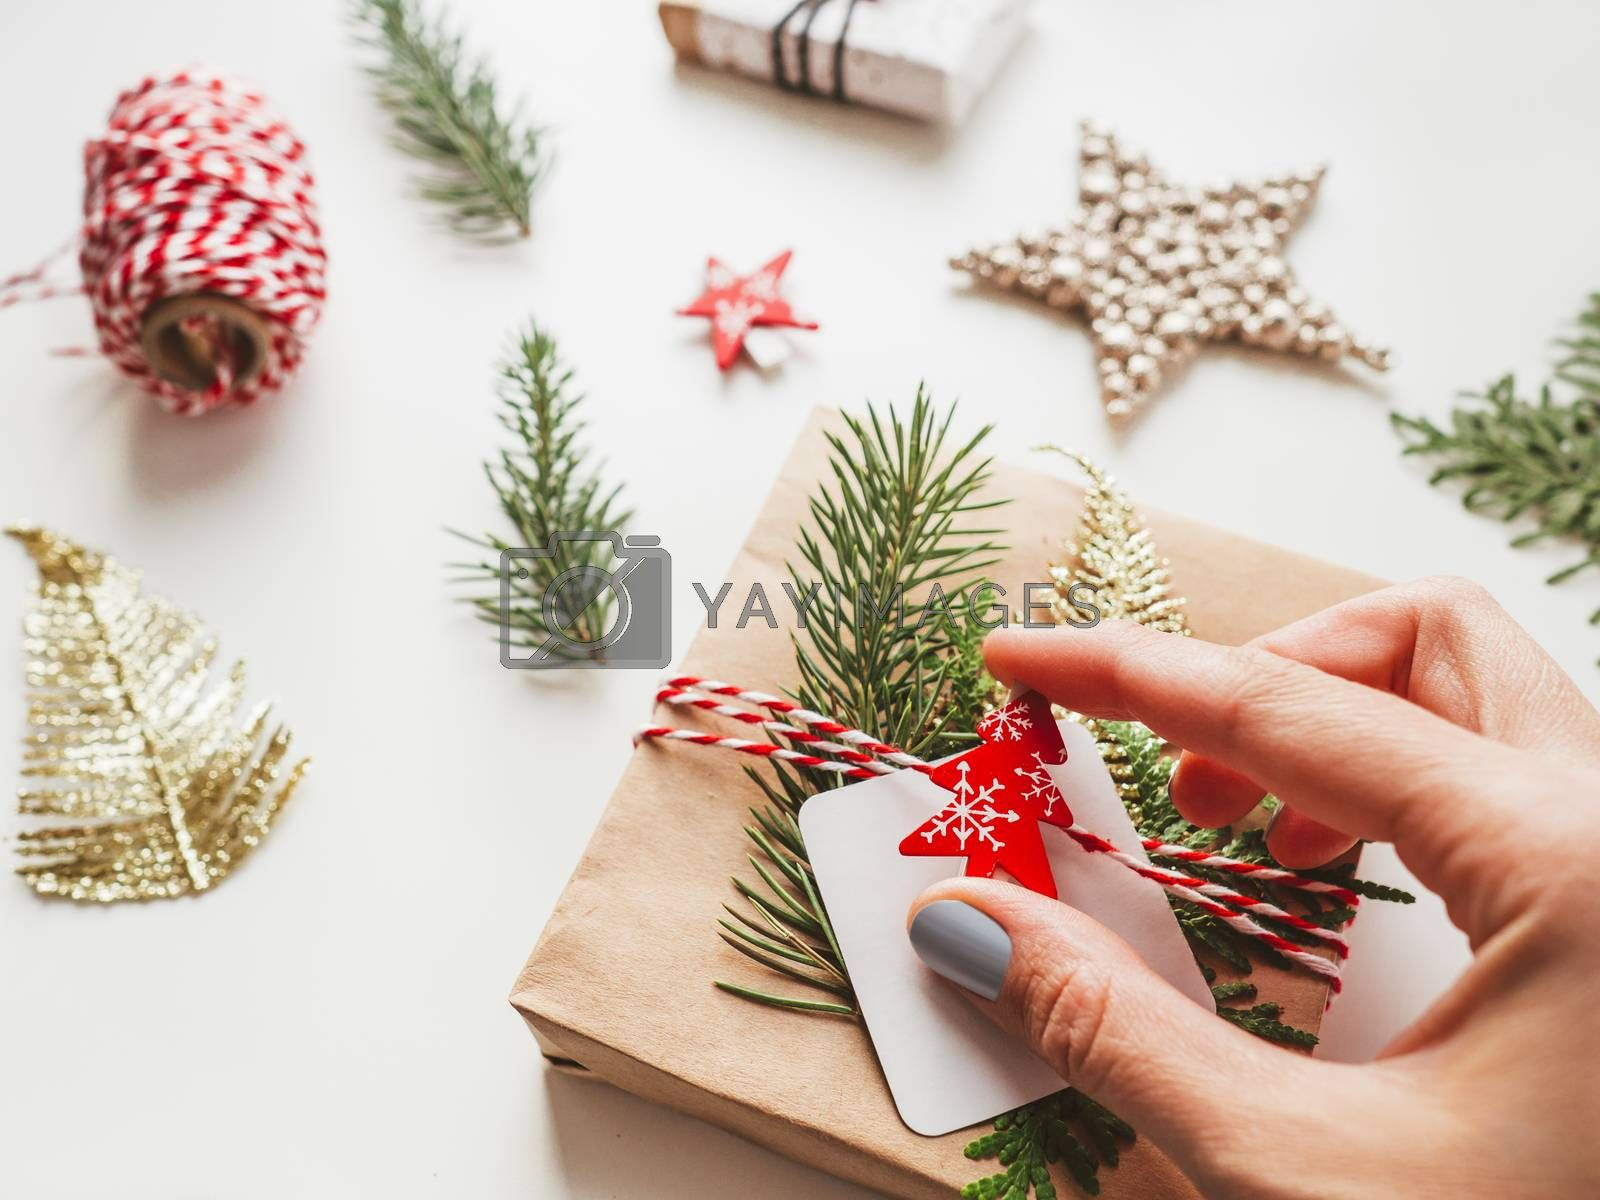 DIY presents wrapped in craft paper with fir tree twigs and red symbol of Christmas tree. Top view on decorations on New Year gifts. Festive background. Winter holiday spirit.